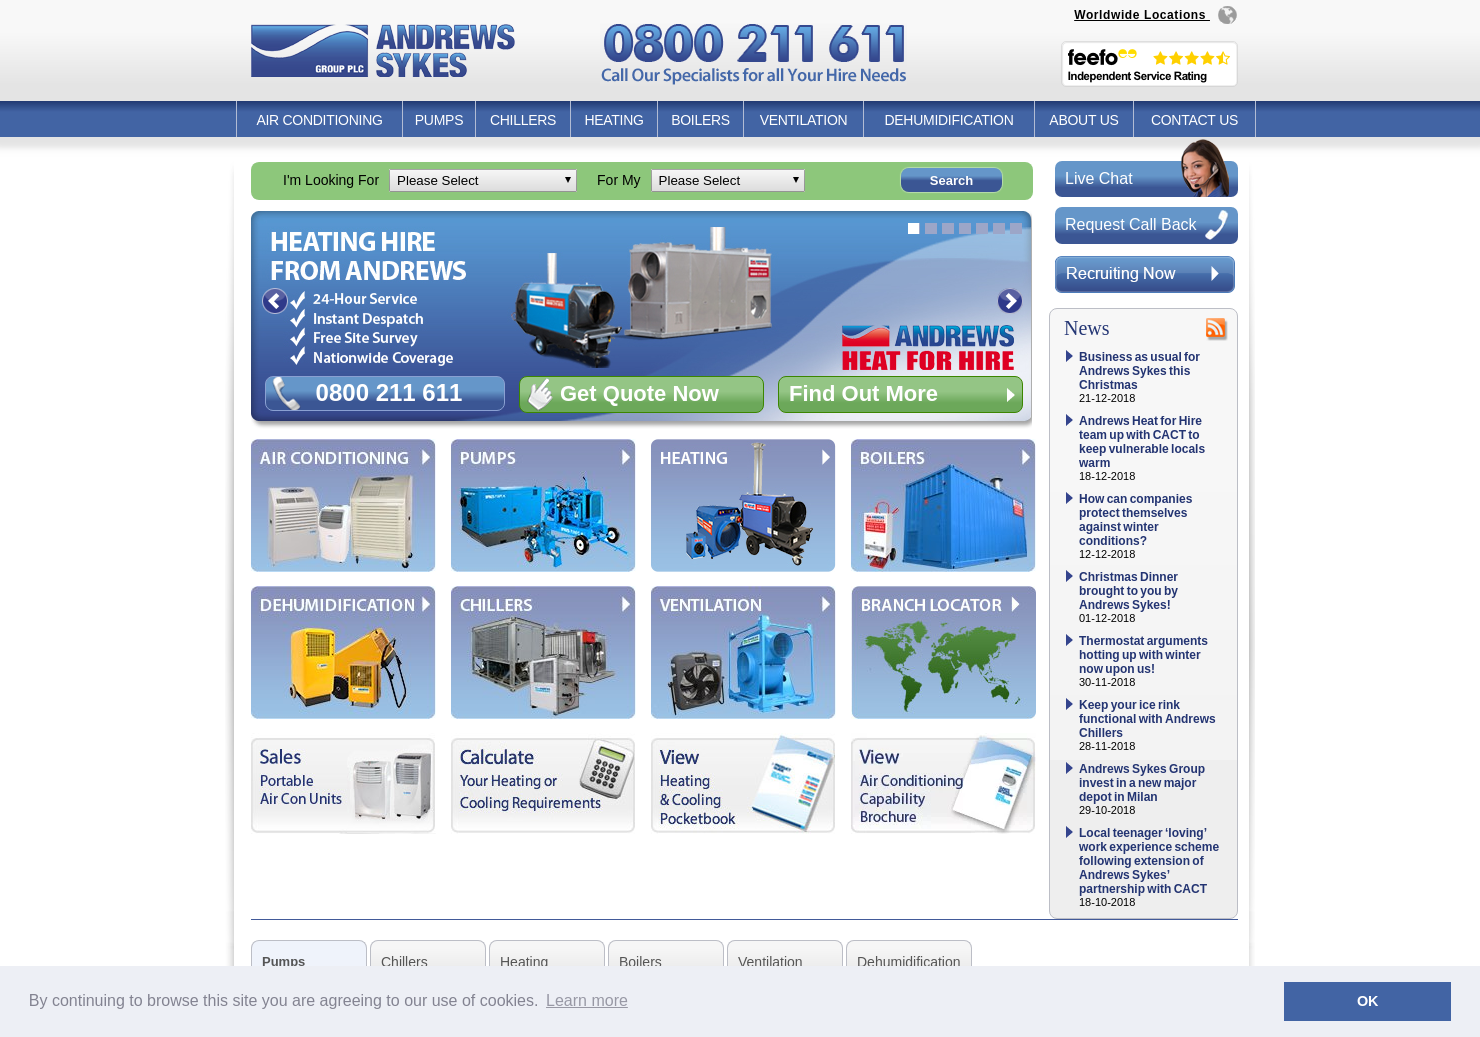 Andrew Sykes Home Page